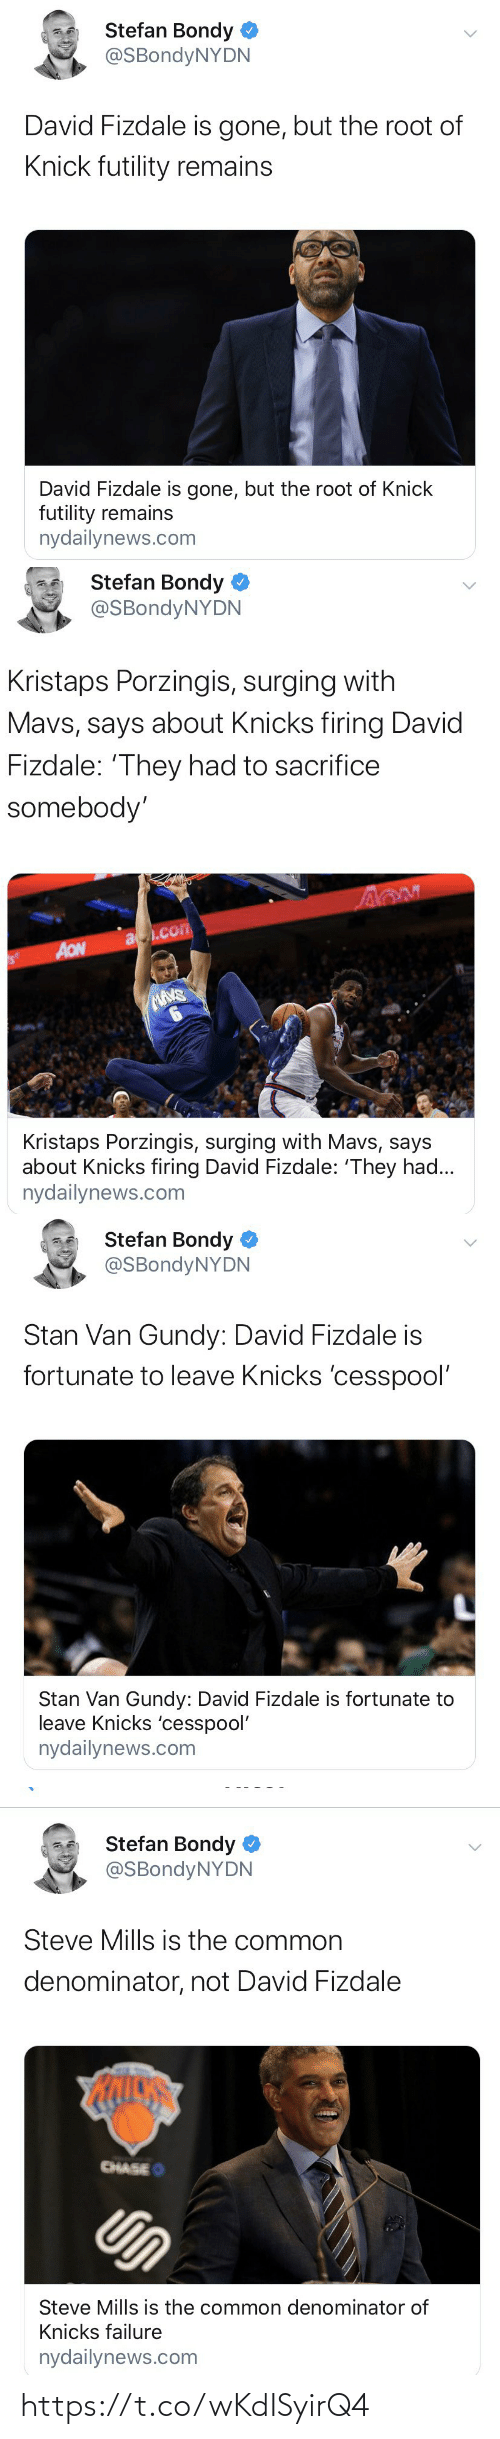 Nydailynews: Stefan Bondy  @SBondyNYDN  David Fizdale is gone, but the root of  Knick futility remains  David Fizdale is gone, but the root of Knick  futility remains  nydailynews.com   Stefan Bondy  @SBondyNYDN  Kristaps Porzingis, surging with  Mavs, says about Knicks firing David  Fizdale: 'They had to sacrifice  somebody'  a.com  AON  MAVS  Kristaps Porzingis, surging with Mavs, says  about Knicks firing David Fizdale: 'They had...  nydailynews.com   Stefan Bondy  @SBondyNYDN  Stan Van Gundy: David Fizdale is  fortunate to leave Knicks 'cesspool'  Stan Van Gundy: David Fizdale is fortunate to  leave Knicks 'cesspool'  nydailynews.com   Stefan Bondy  @SBondyNYDN  Steve Mills is the common  denominator, not David Fizdale  CHASEO  Un  Steve Mills is the common denominator of  Knicks failure  nydailynews.com https://t.co/wKdISyirQ4